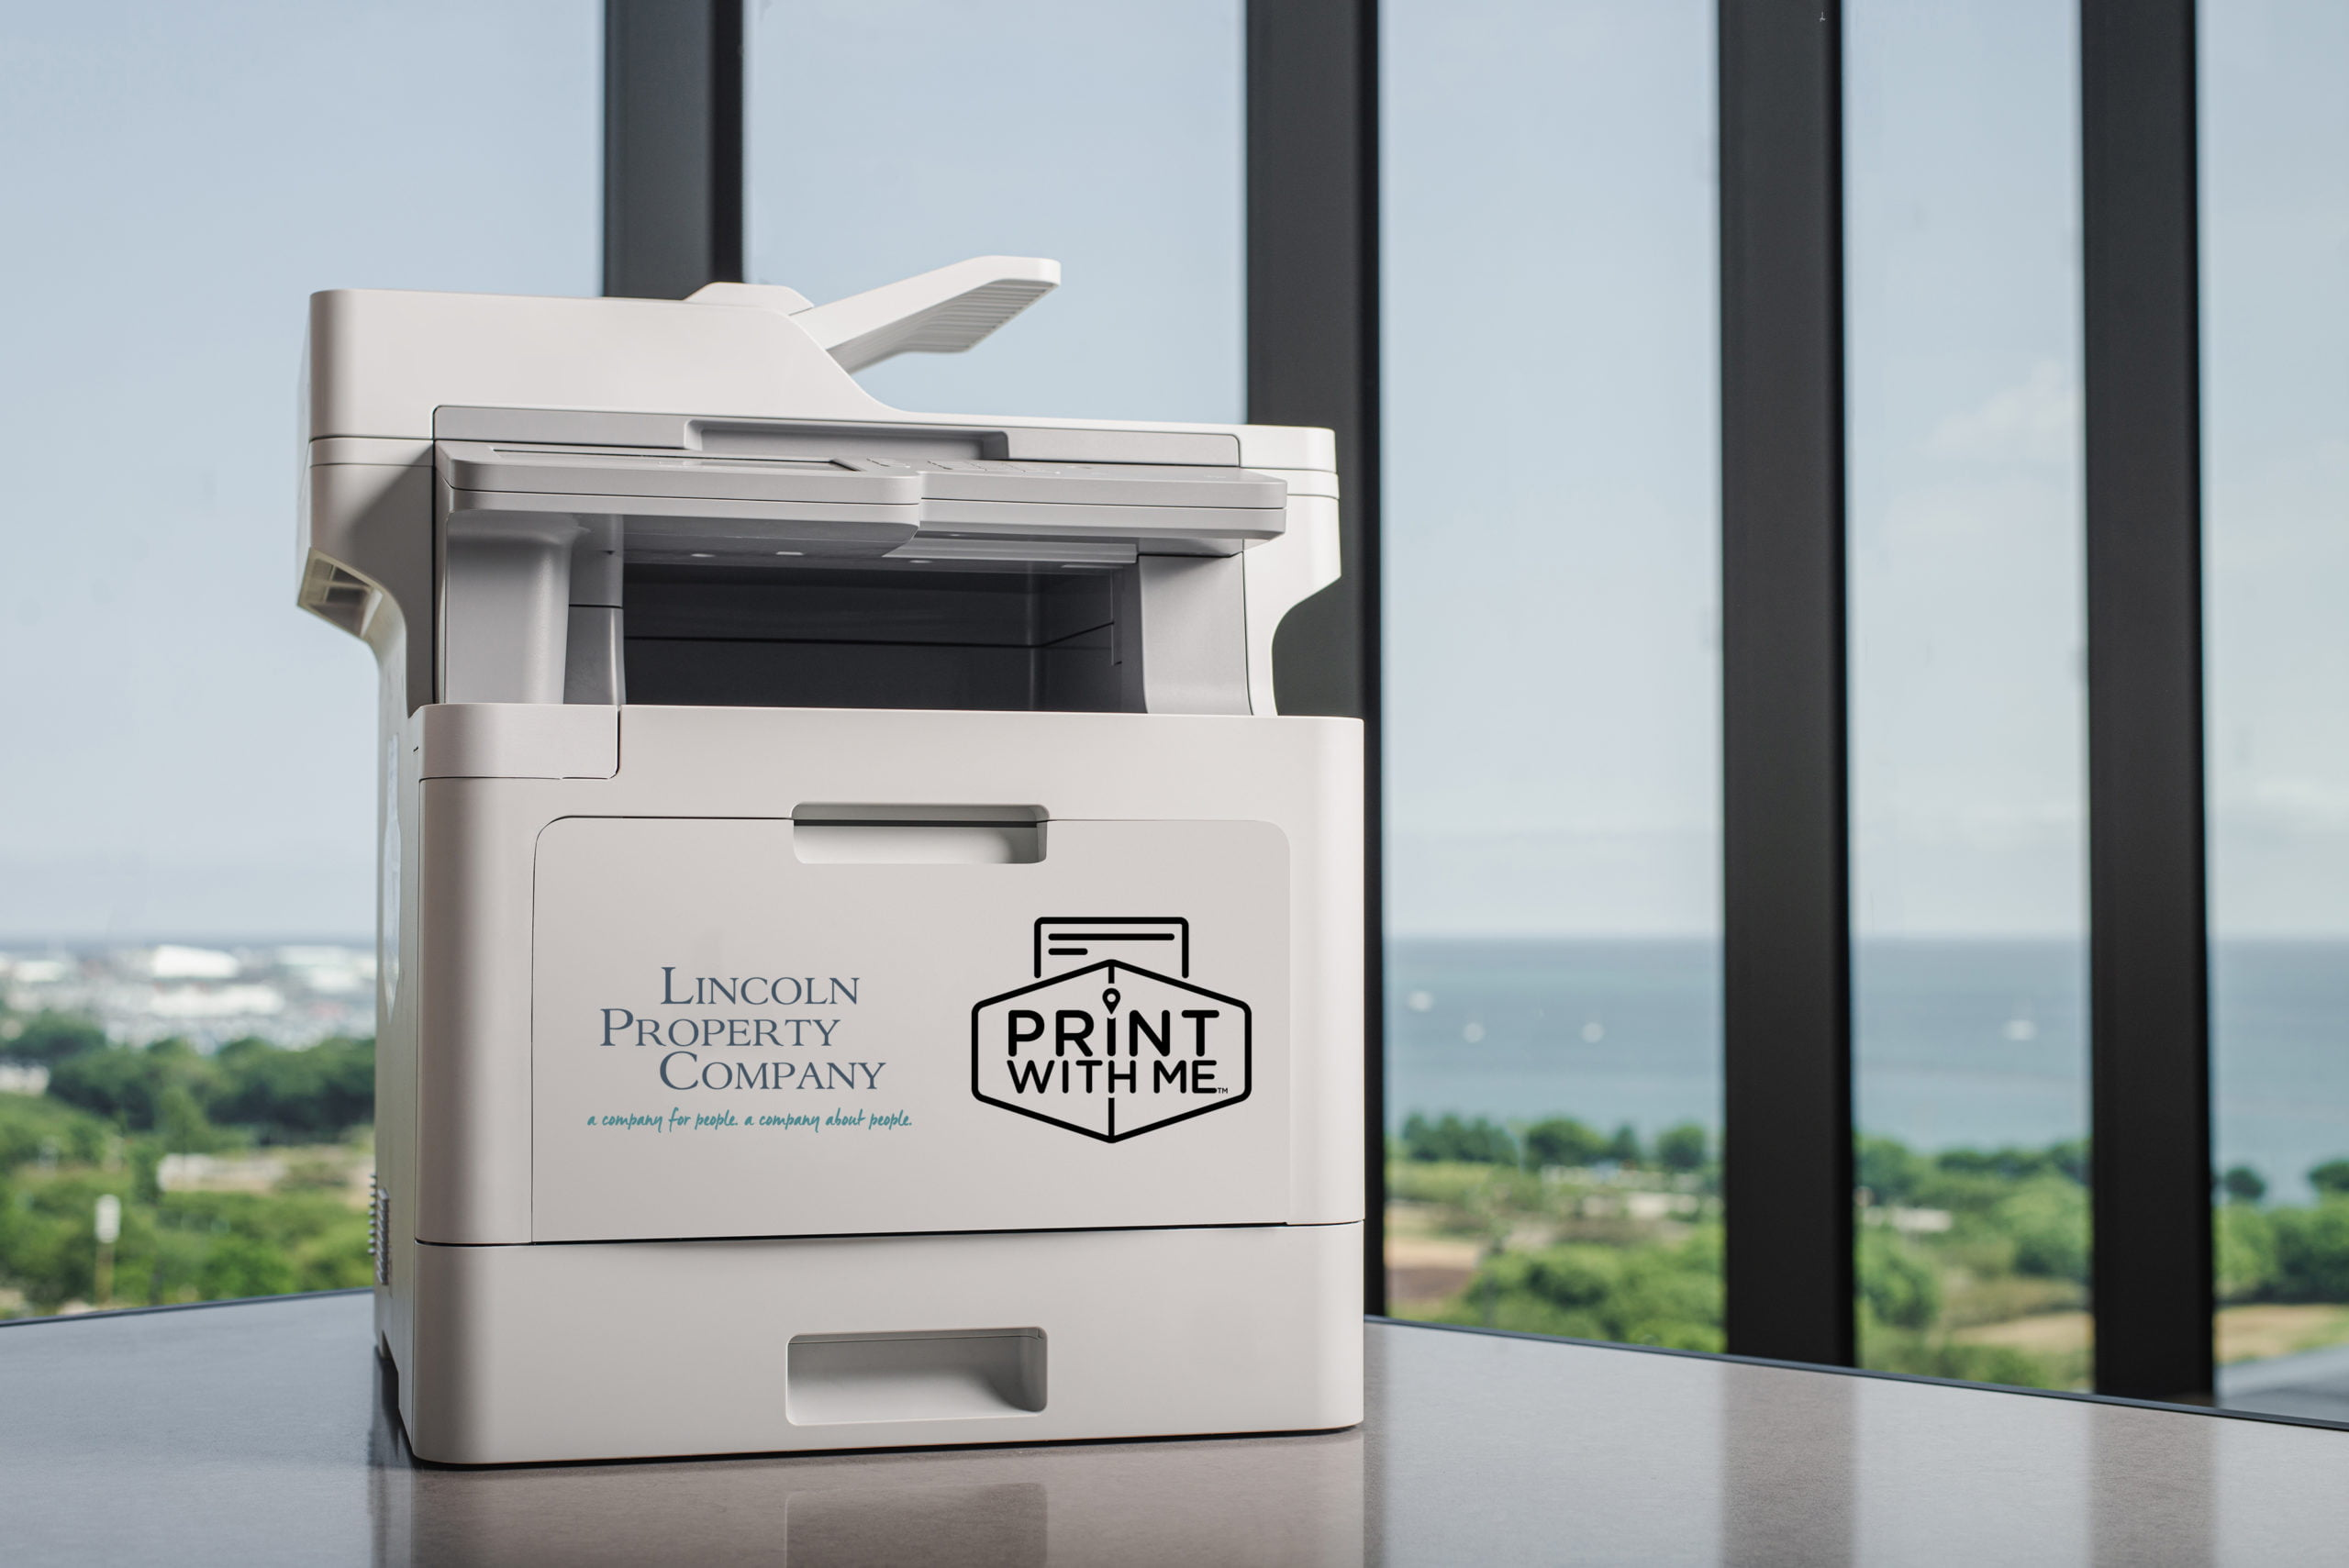 PrintWithMe Announces National Partnership With Lincoln Property Company